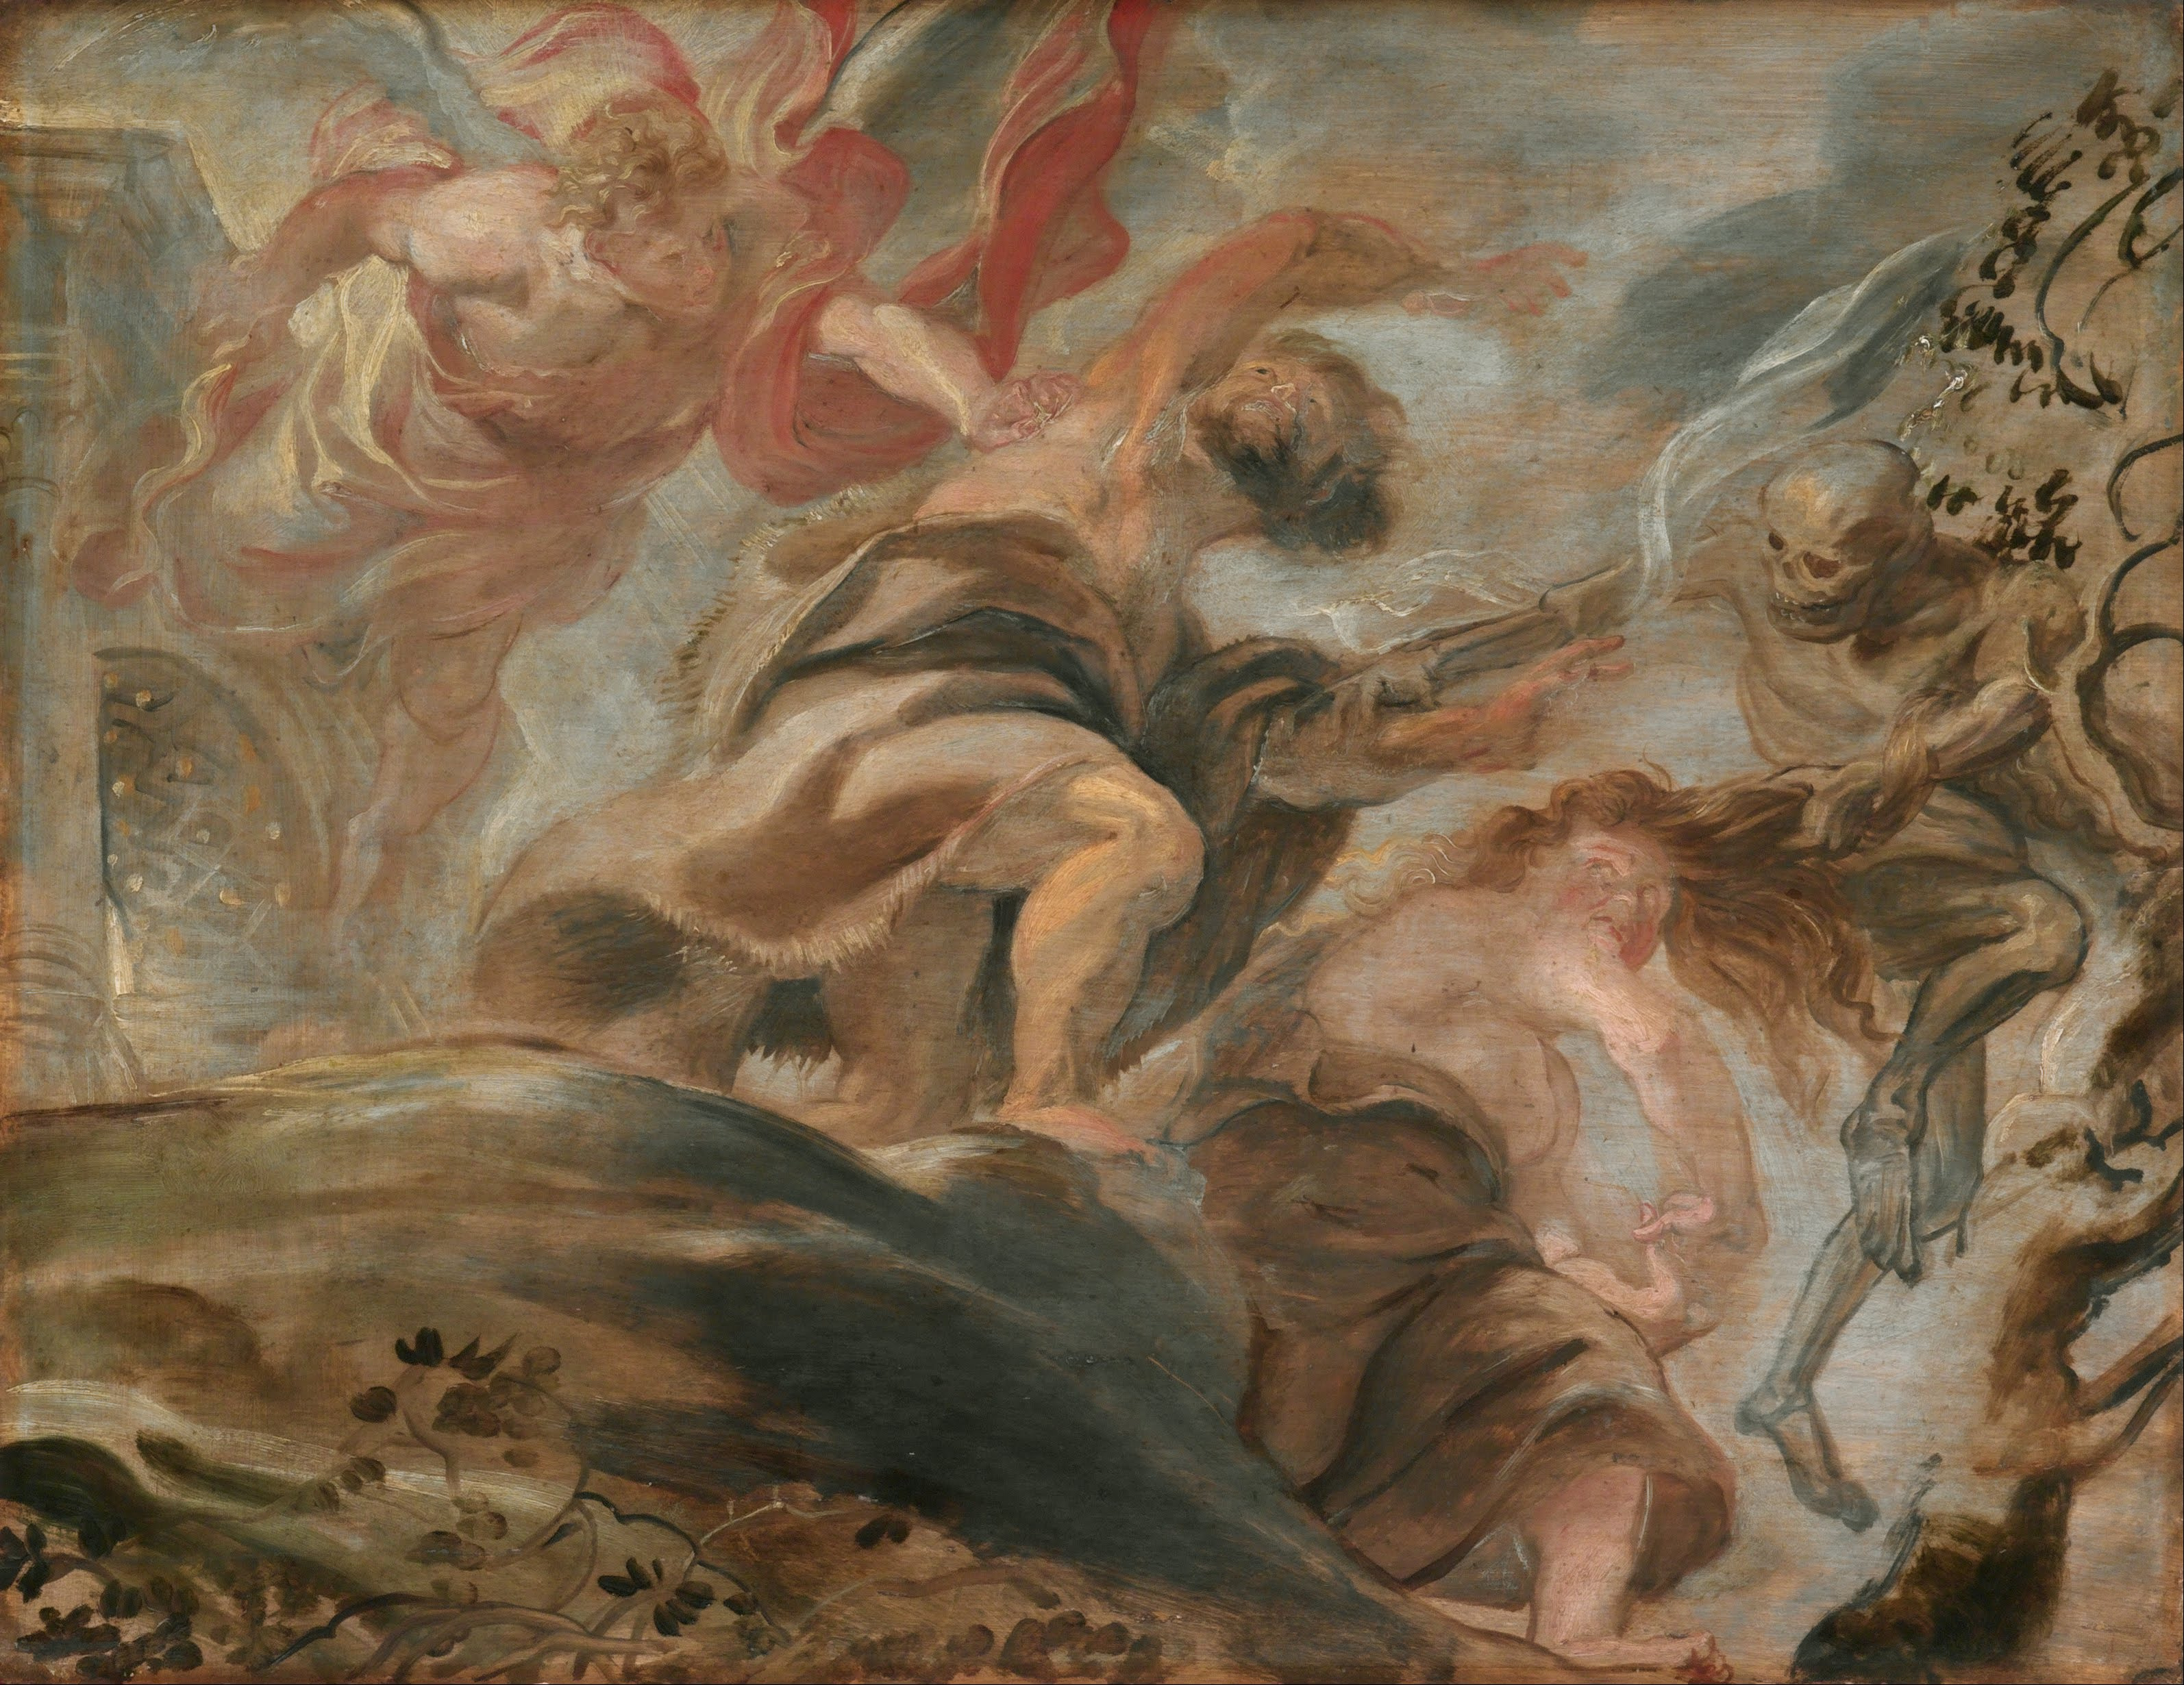 Expulsion from the Garden of Eden, by Peter Paul Rubens (1620)